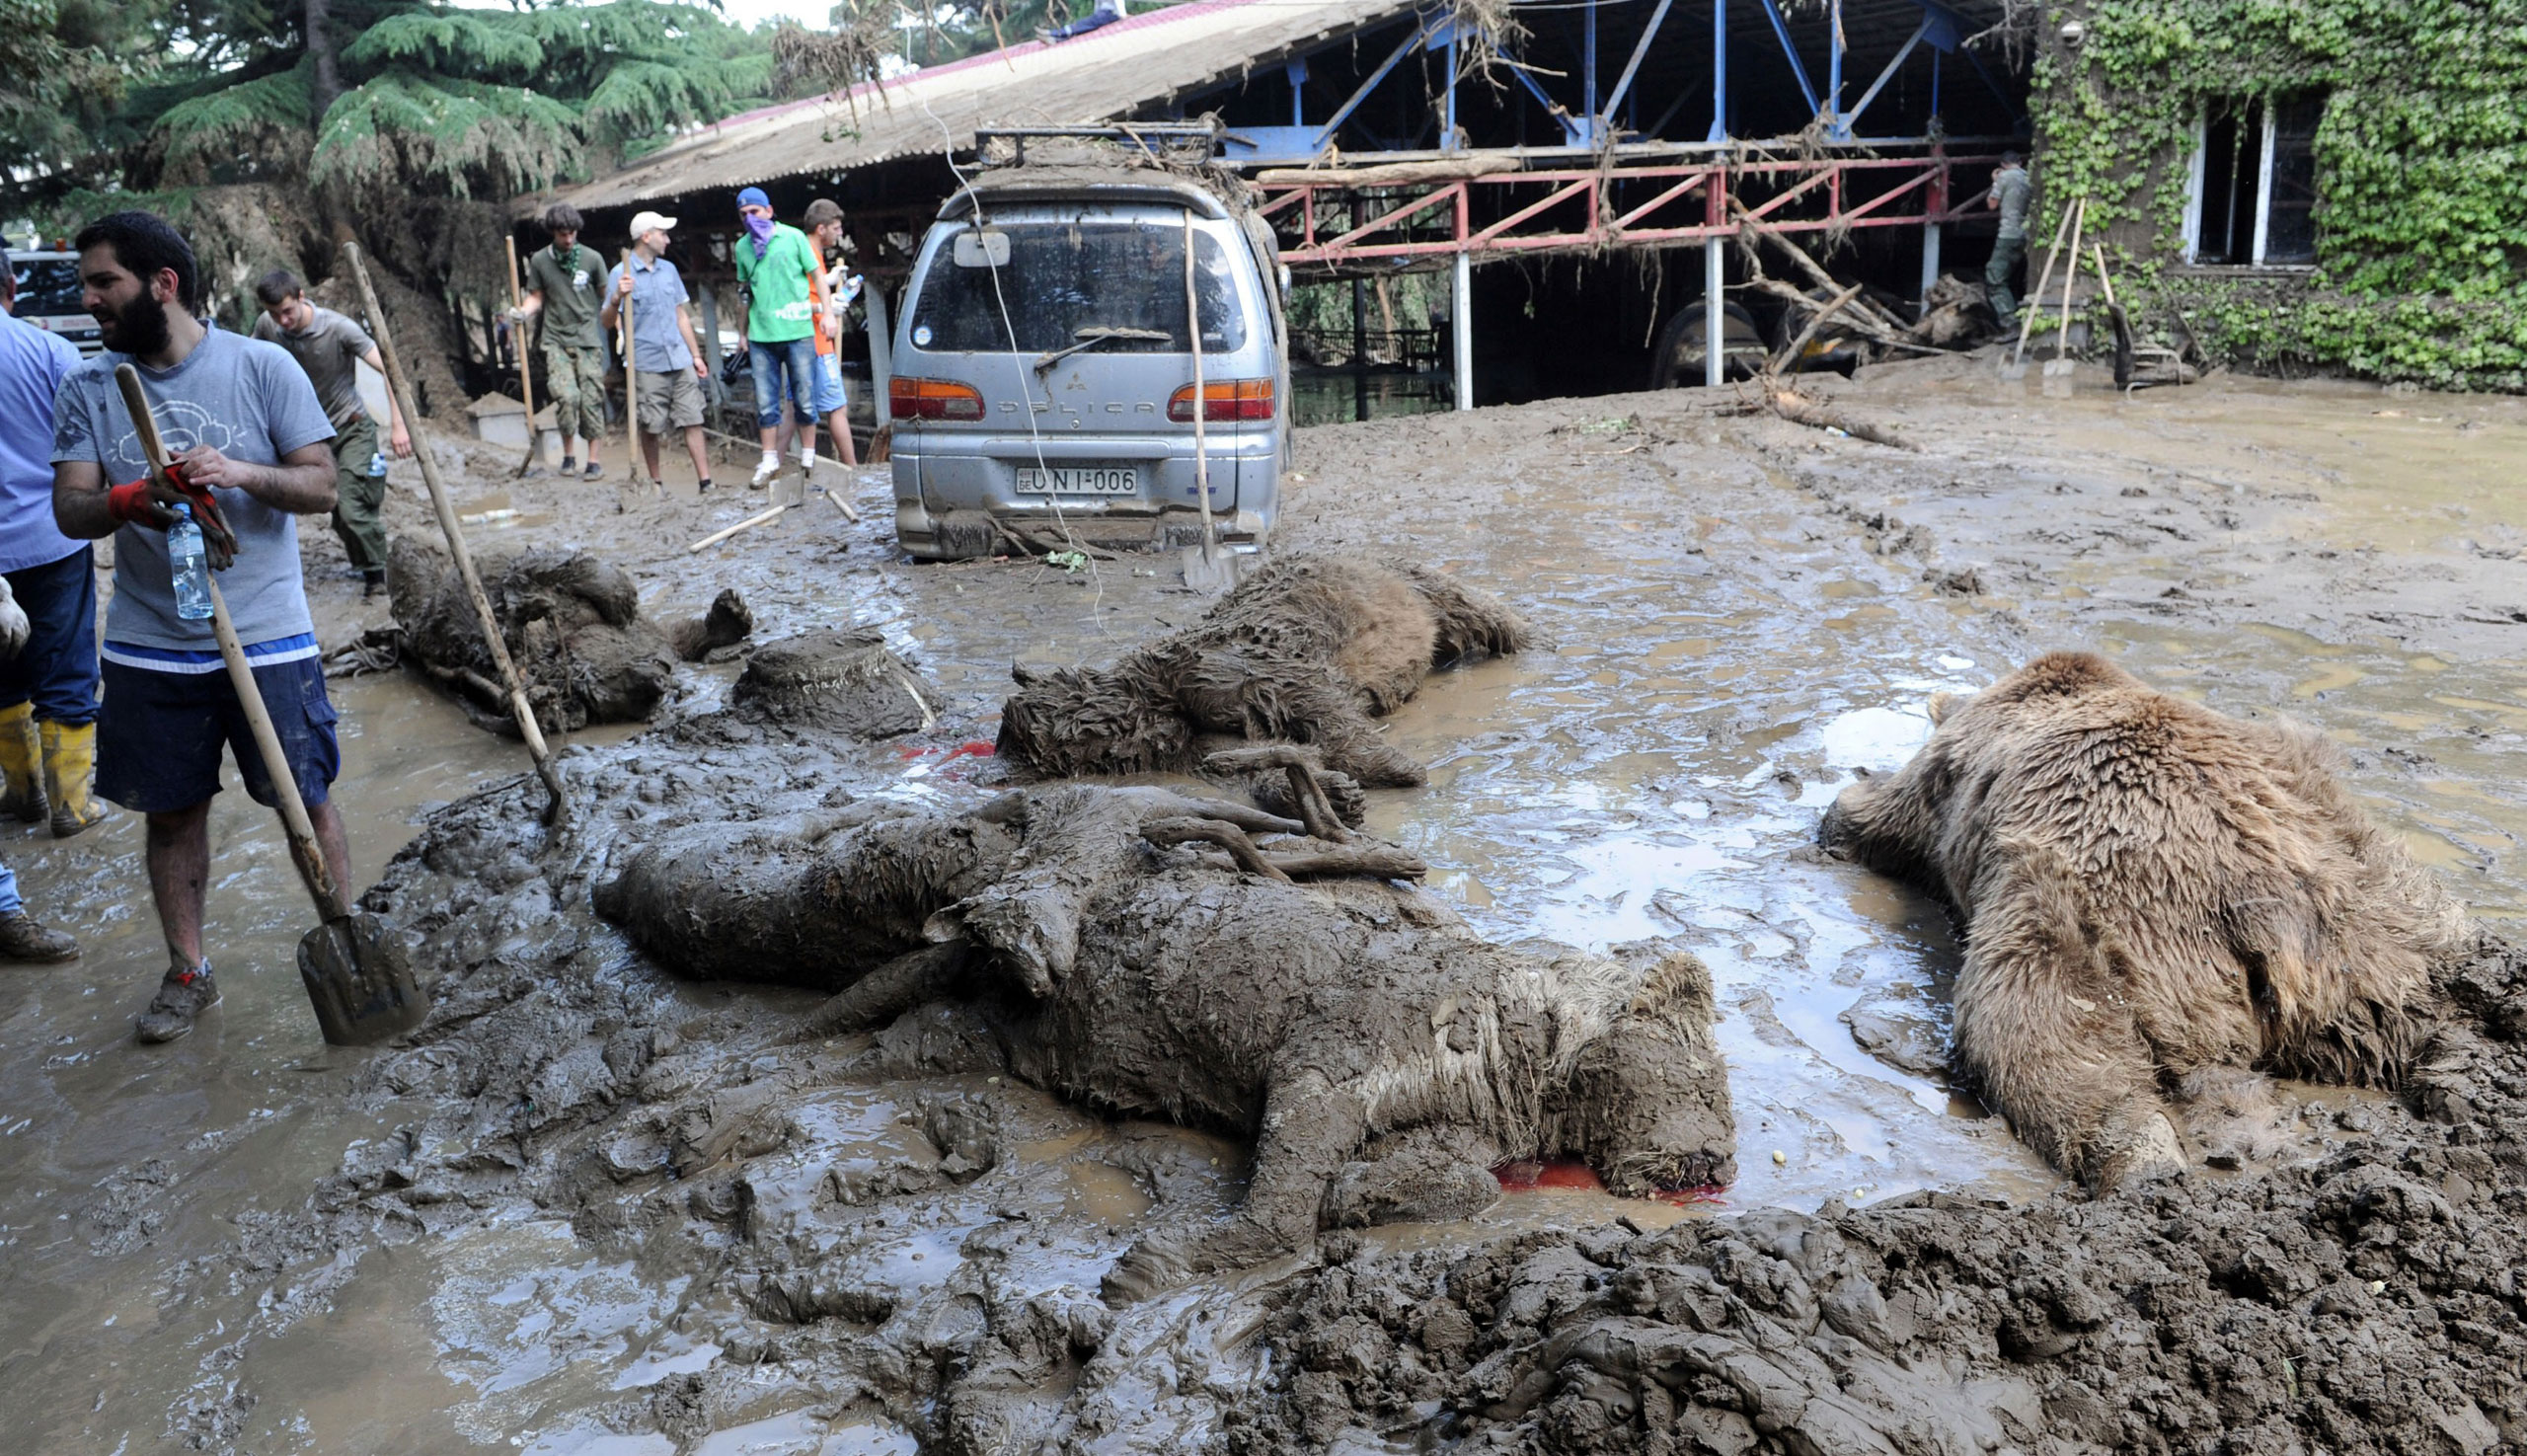 A municipal worker stands near dead animals at a flooded zoo in the Georgian capital Tbilisi, June 15, 2015.